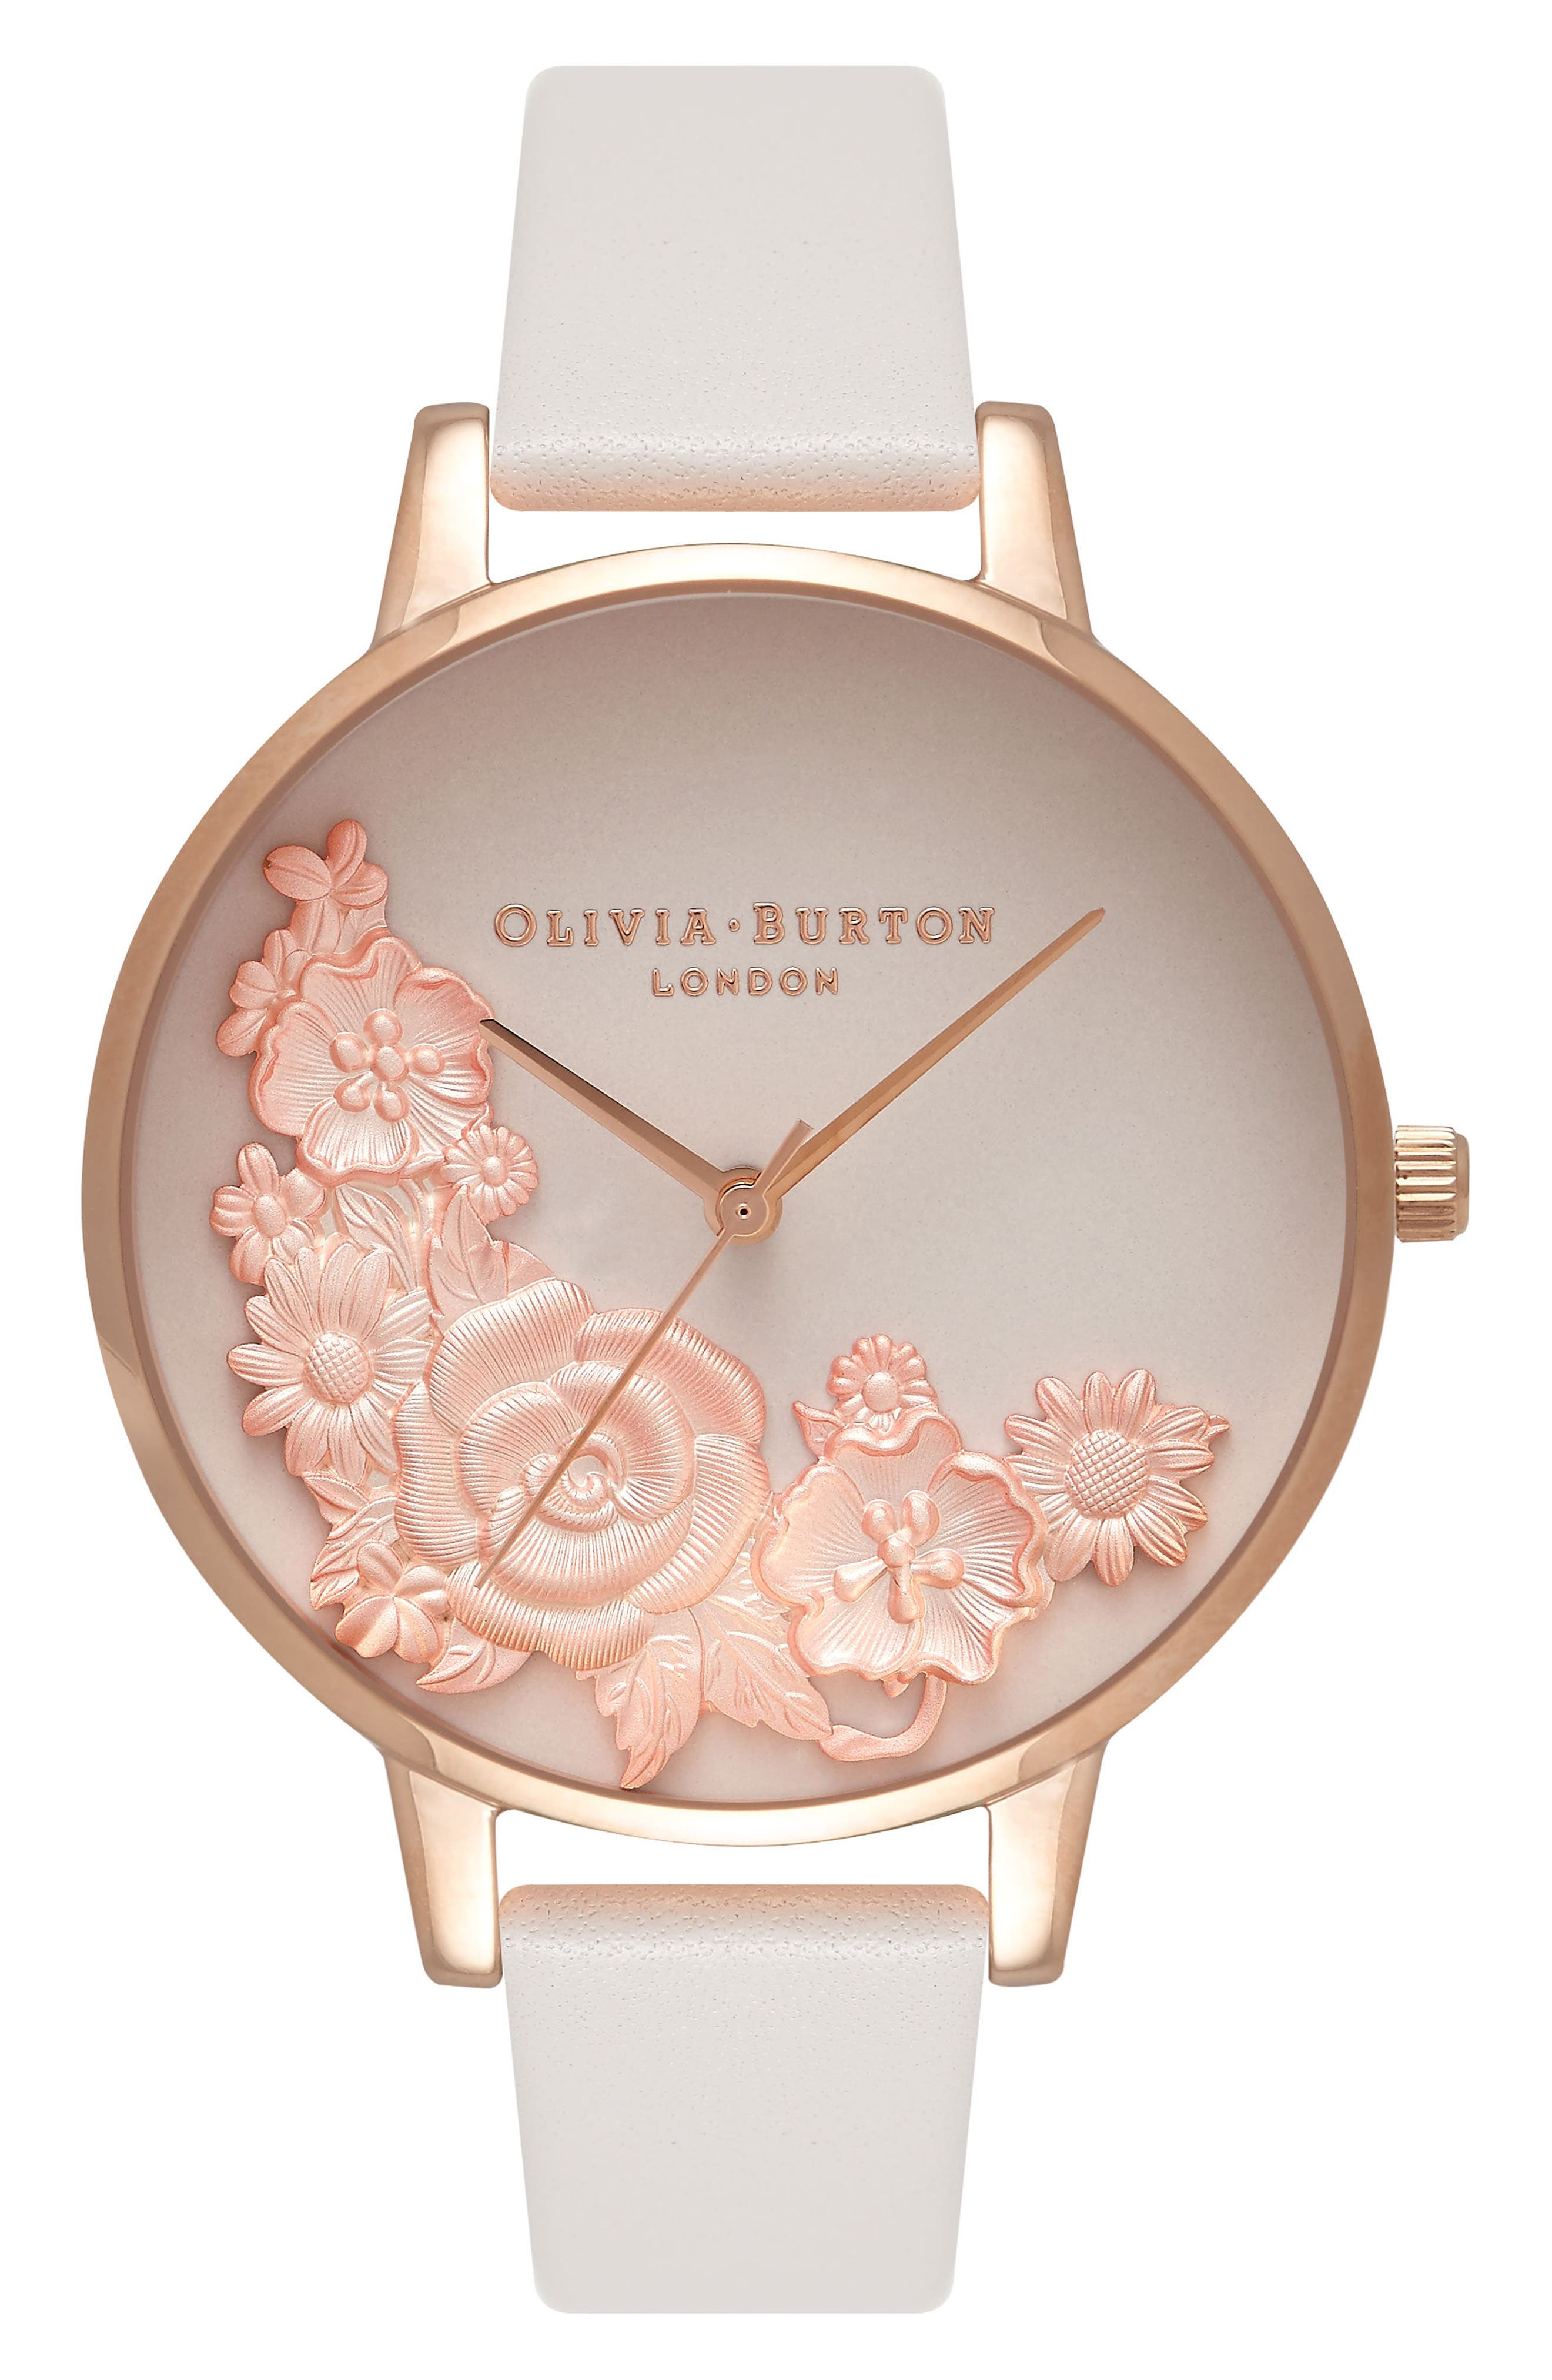 OLIVIA BURTON, Begin to Blush Leather Strap Watch, 38mm, Main thumbnail 1, color, 650